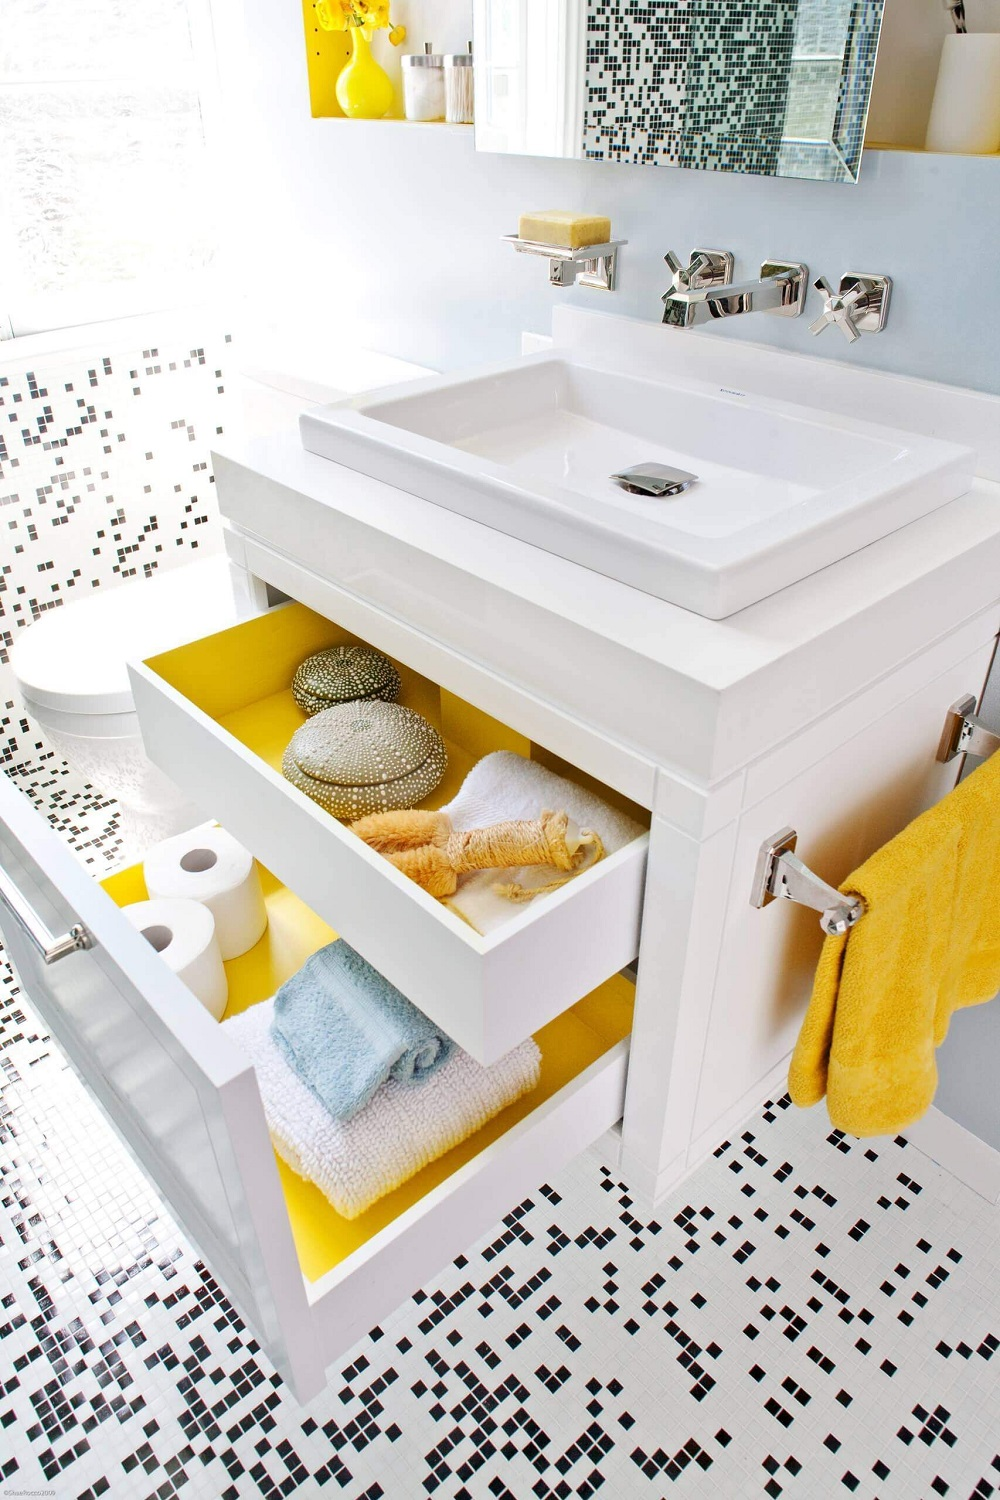 van4-1 Neat corner bathroom vanity ideas that you will find useful